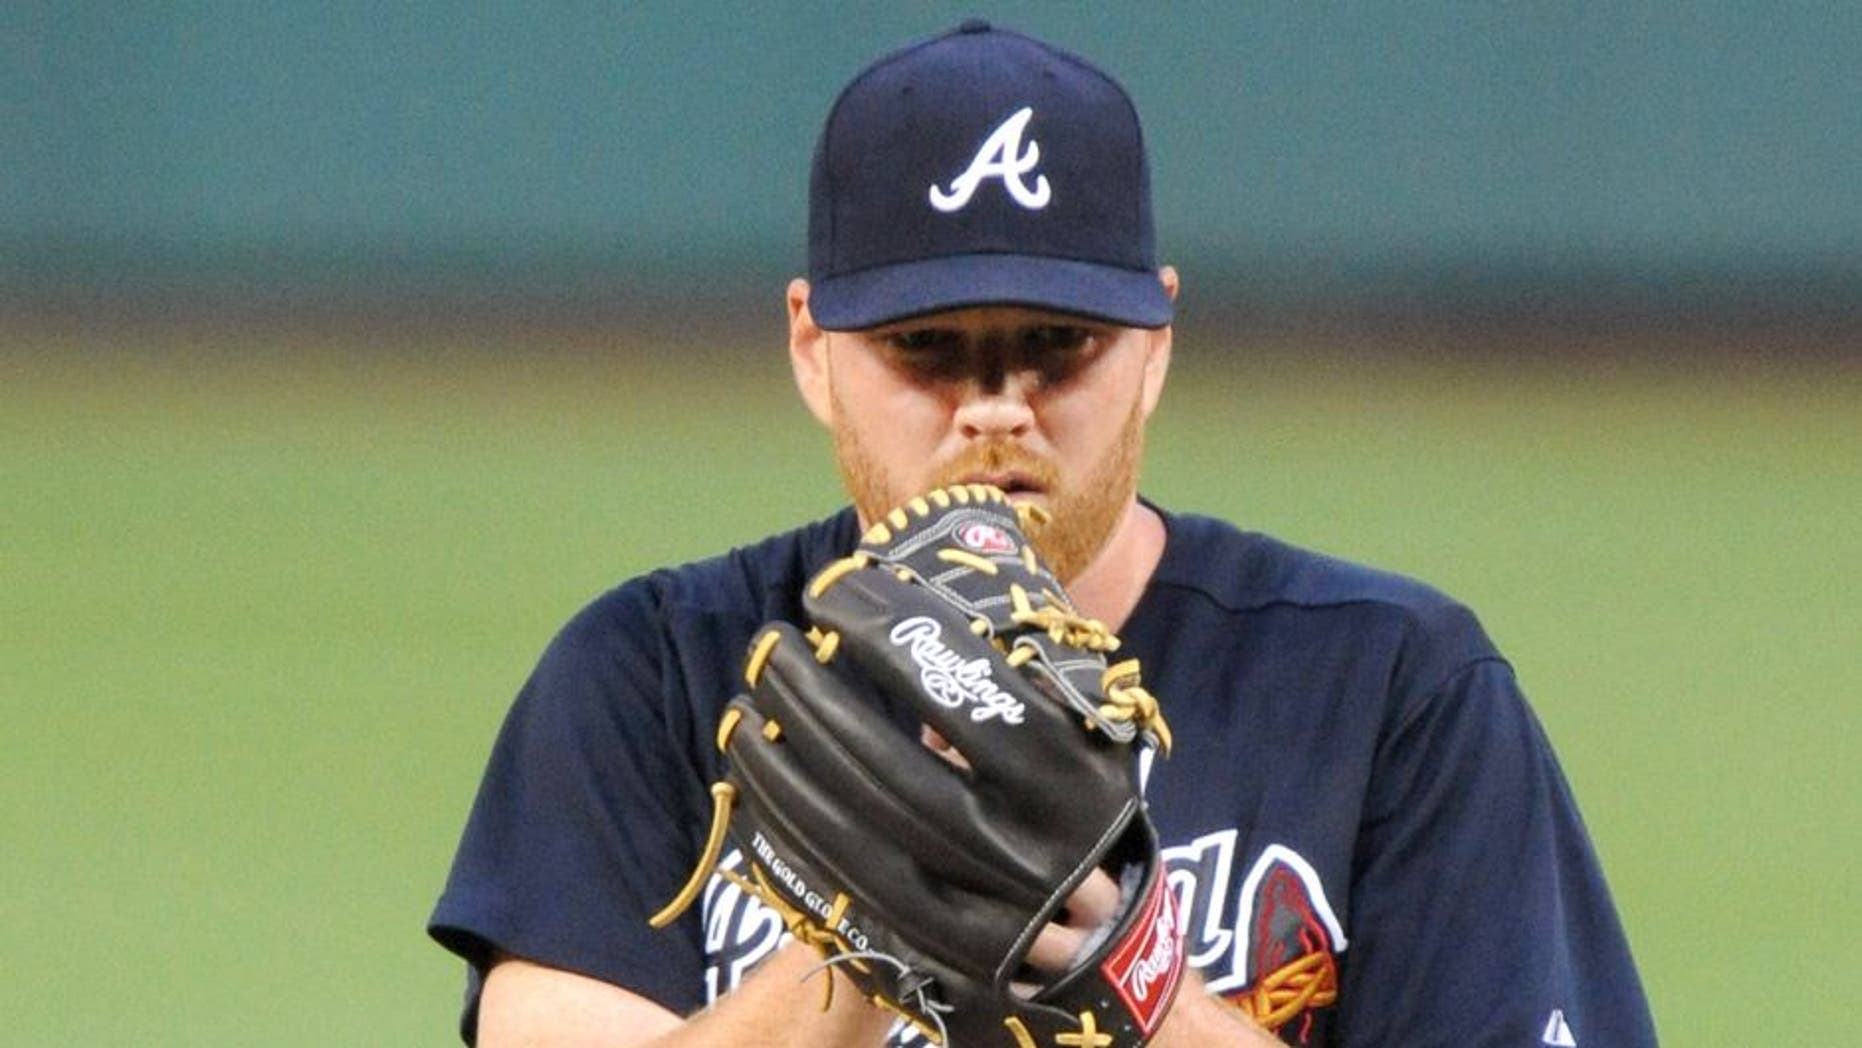 WASHINGTON, DC - JULY 20: Tommy Hanson #48 of the Atlanta Braves pitches during a baseball game against the Washington Nationals on July 20, 2012 at Nationals Park in Washington DC. The Braves won11-10. (Photo by Mitchell Layton/Getty Images)